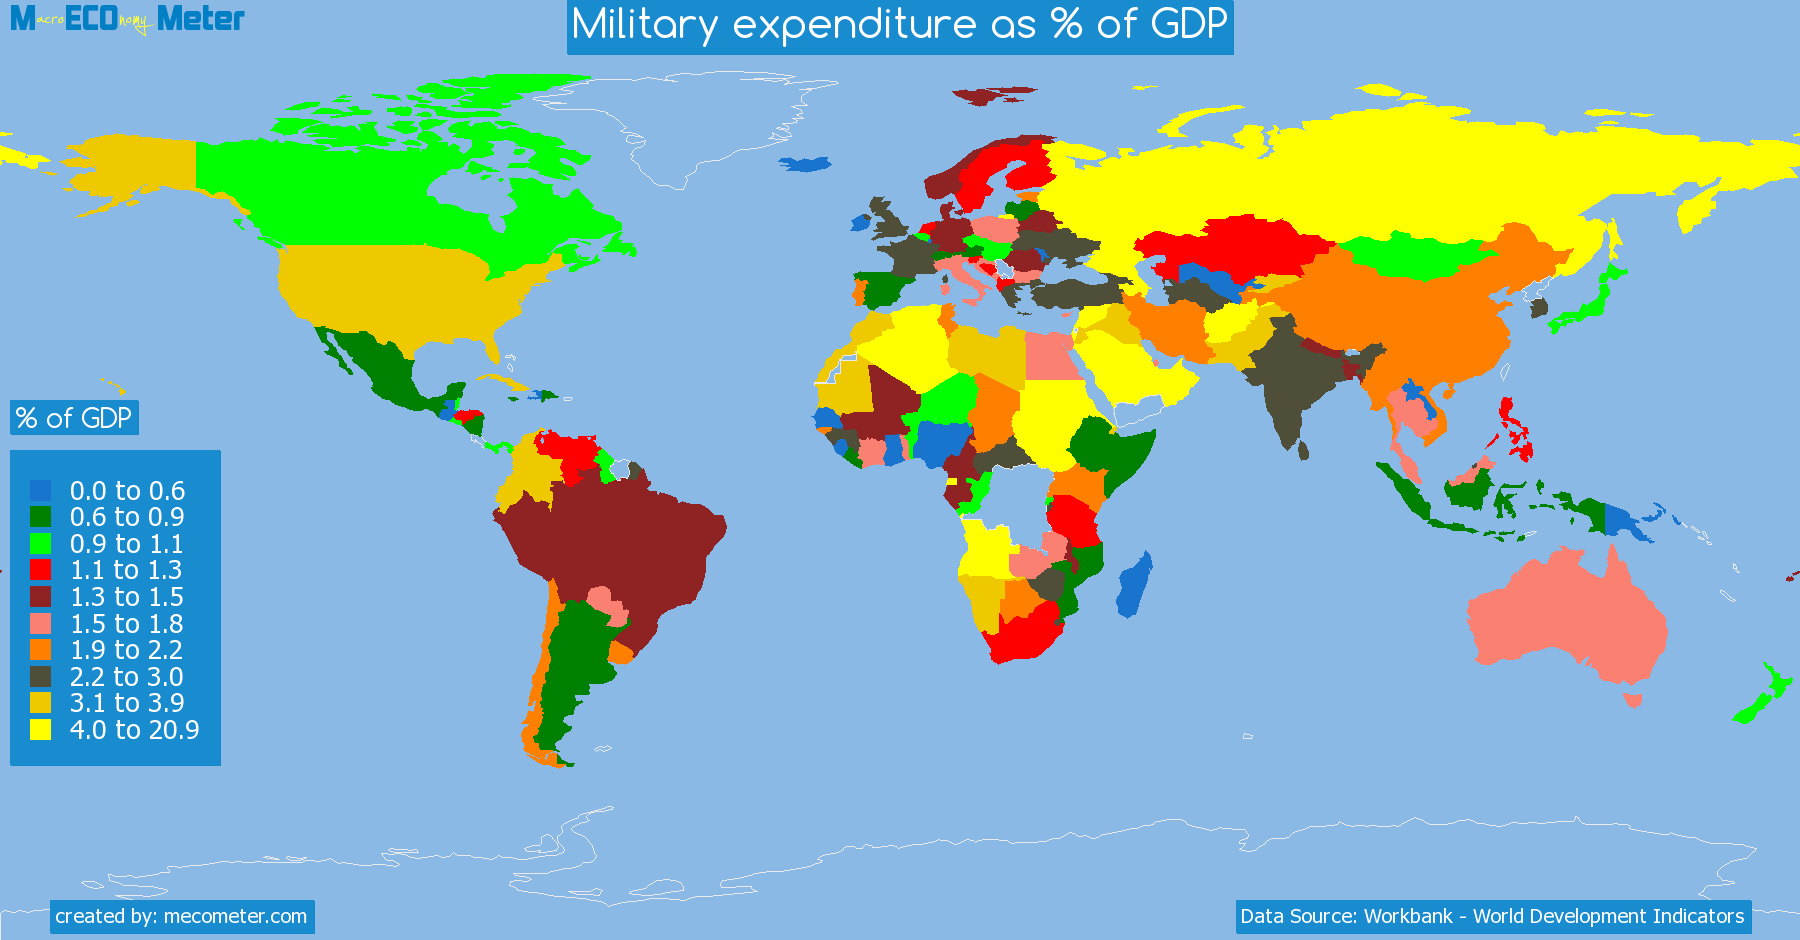 list of countries by Military expenditure as % of GDP